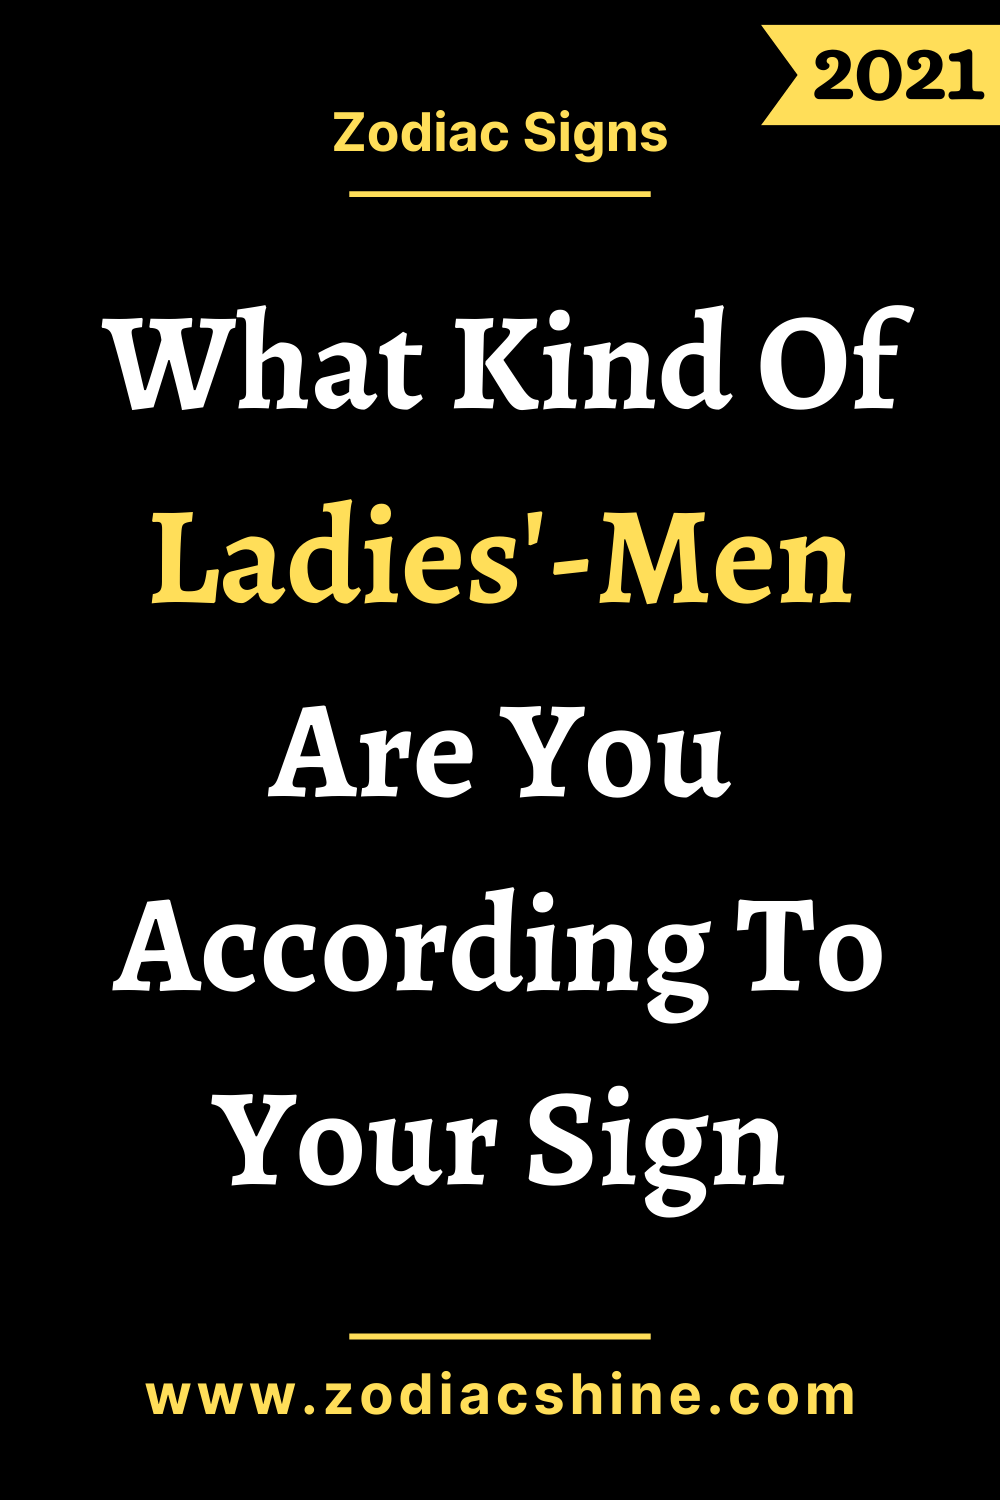 What Kind Of Ladies'-Men Are You According To Your Sign